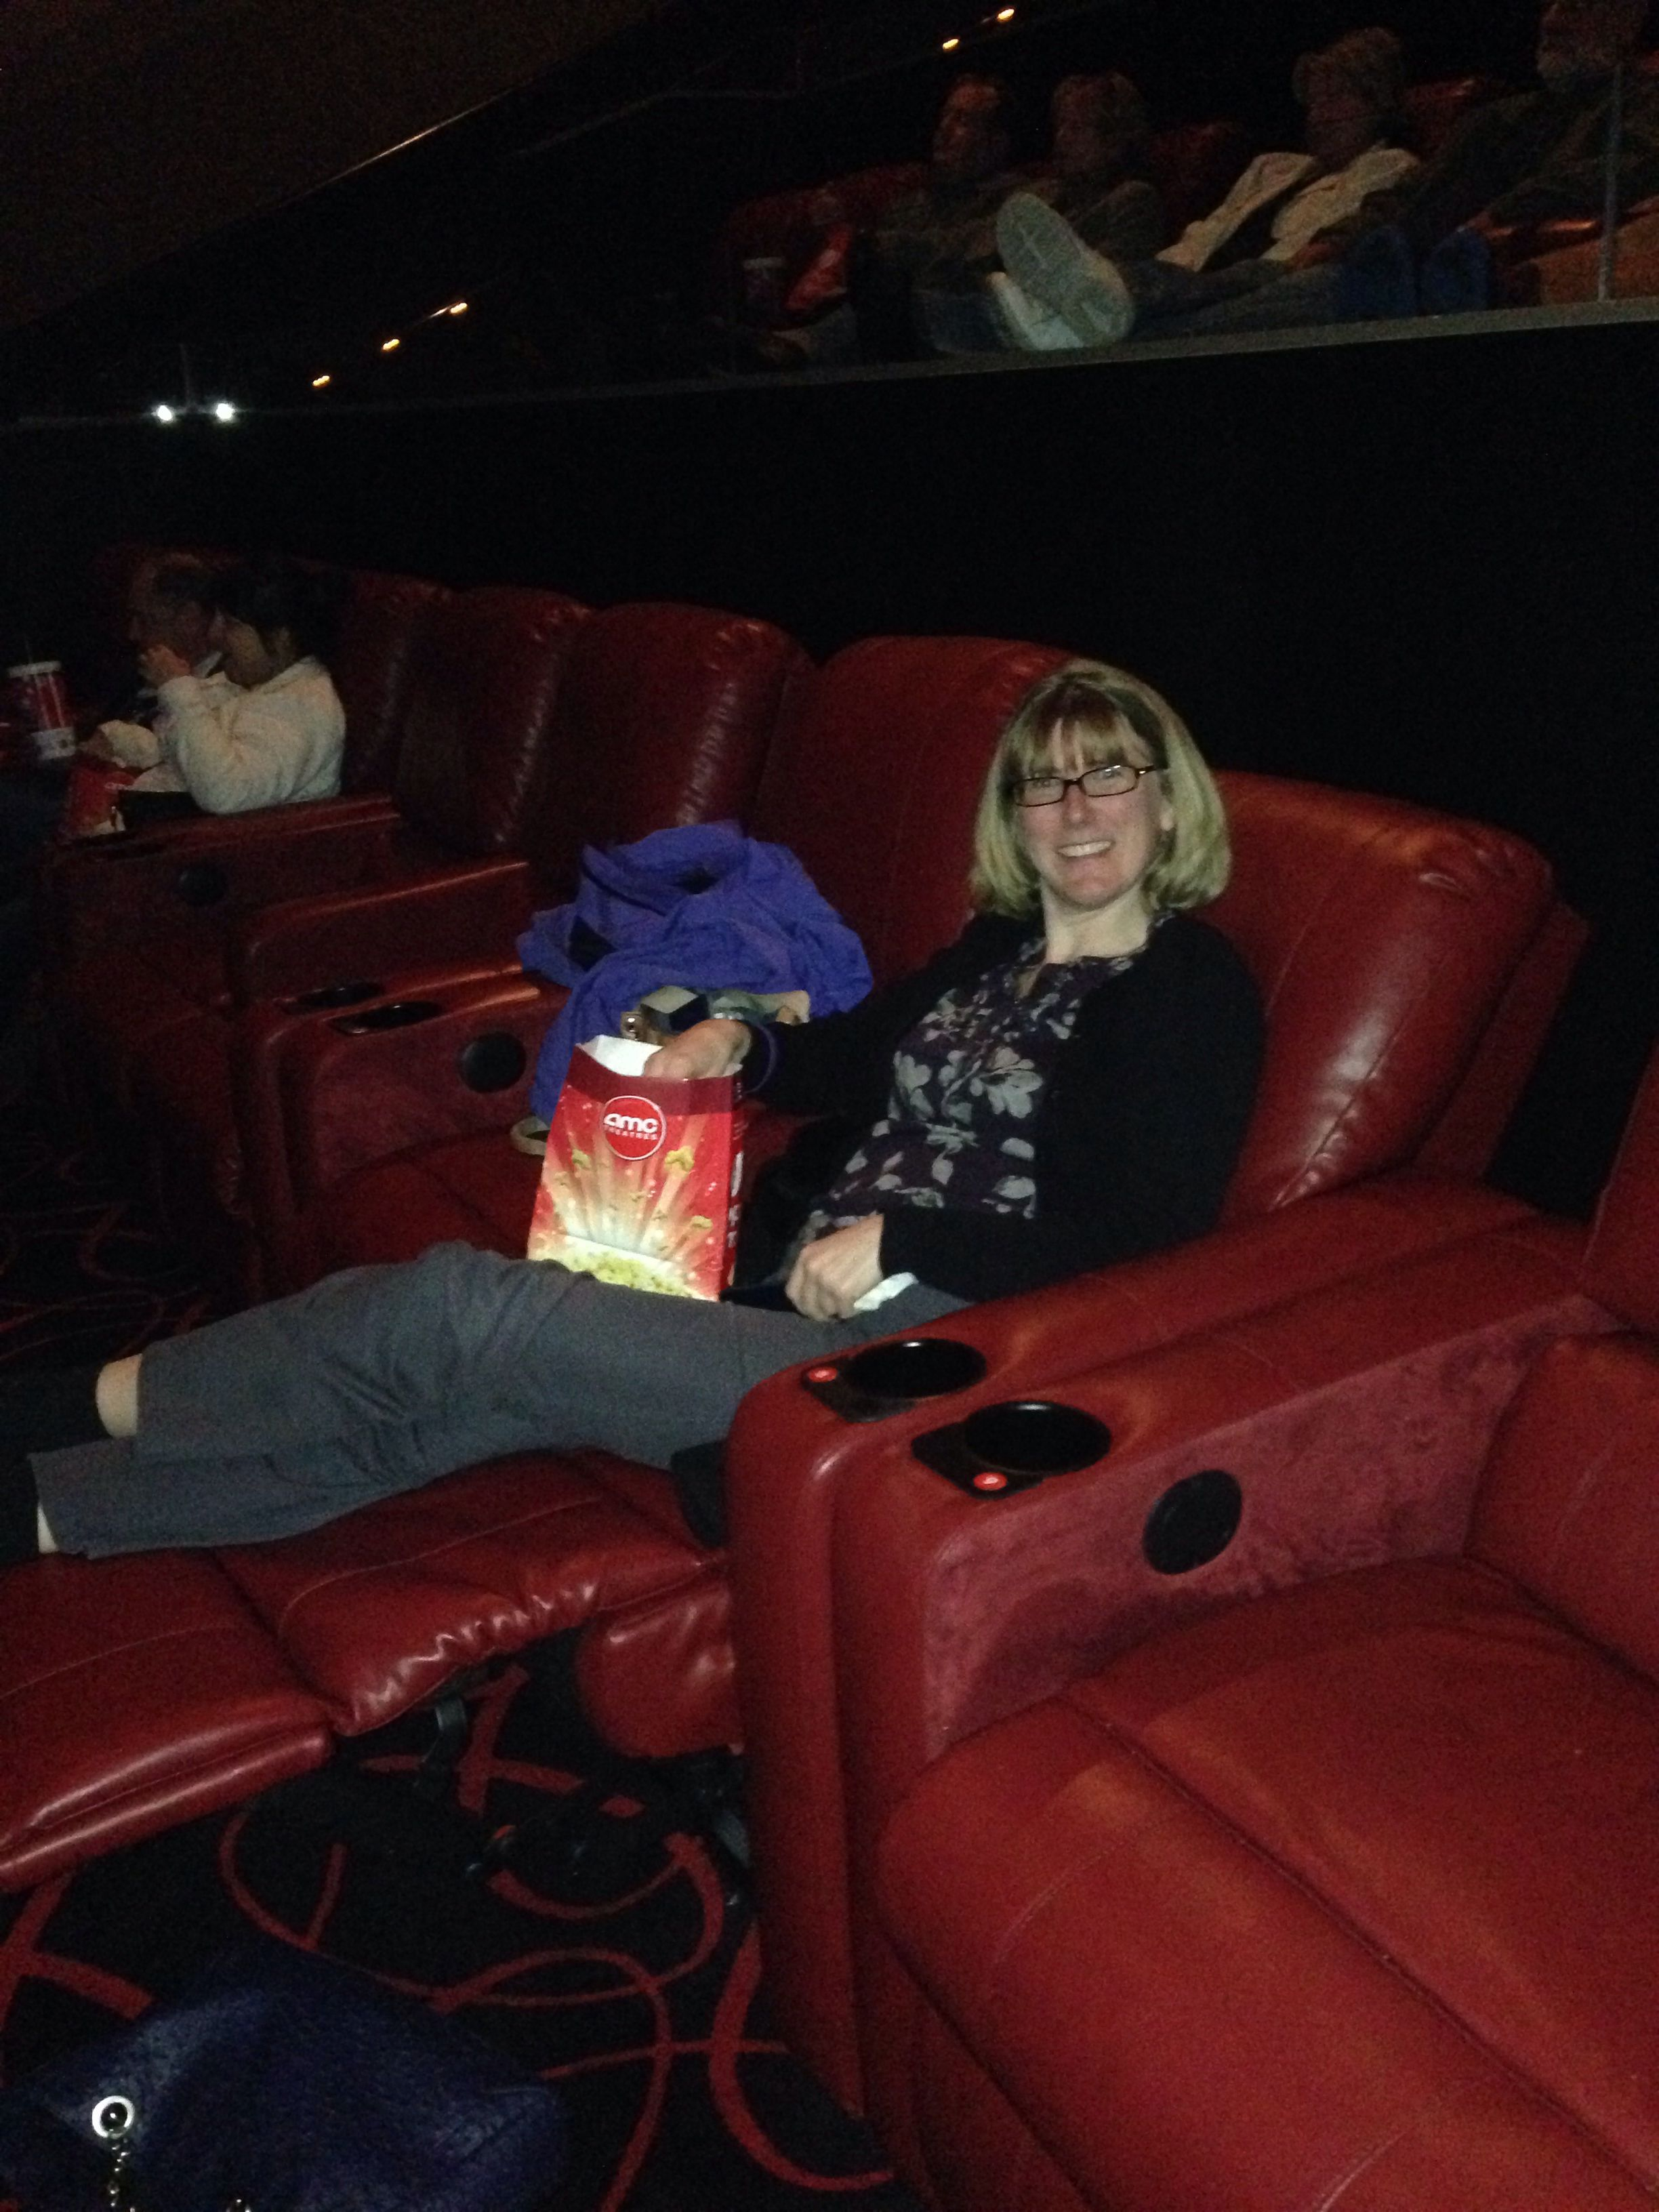 Awesome theater seats